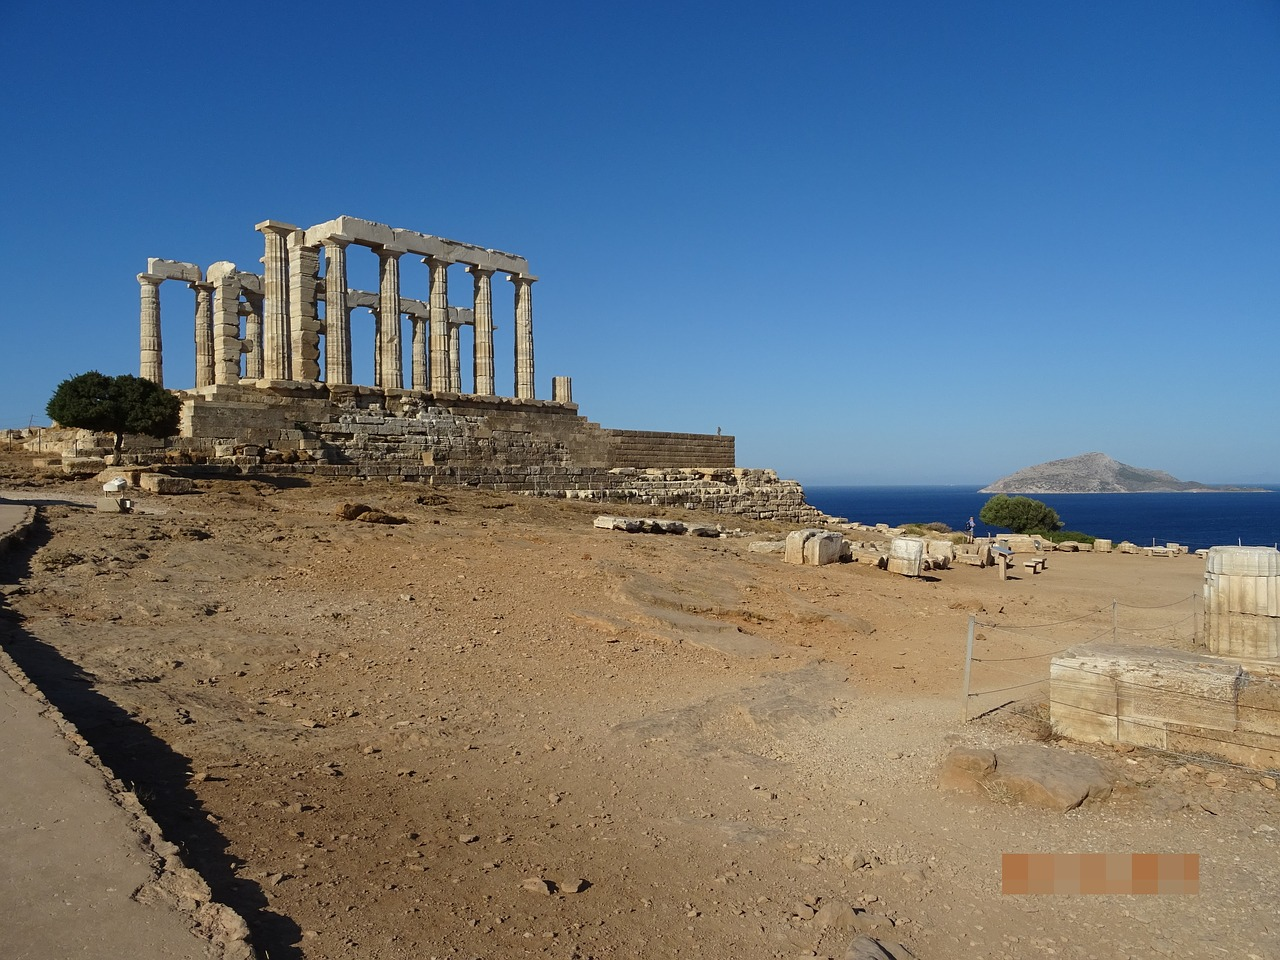 Visit the temple of Poseidon at Sounion